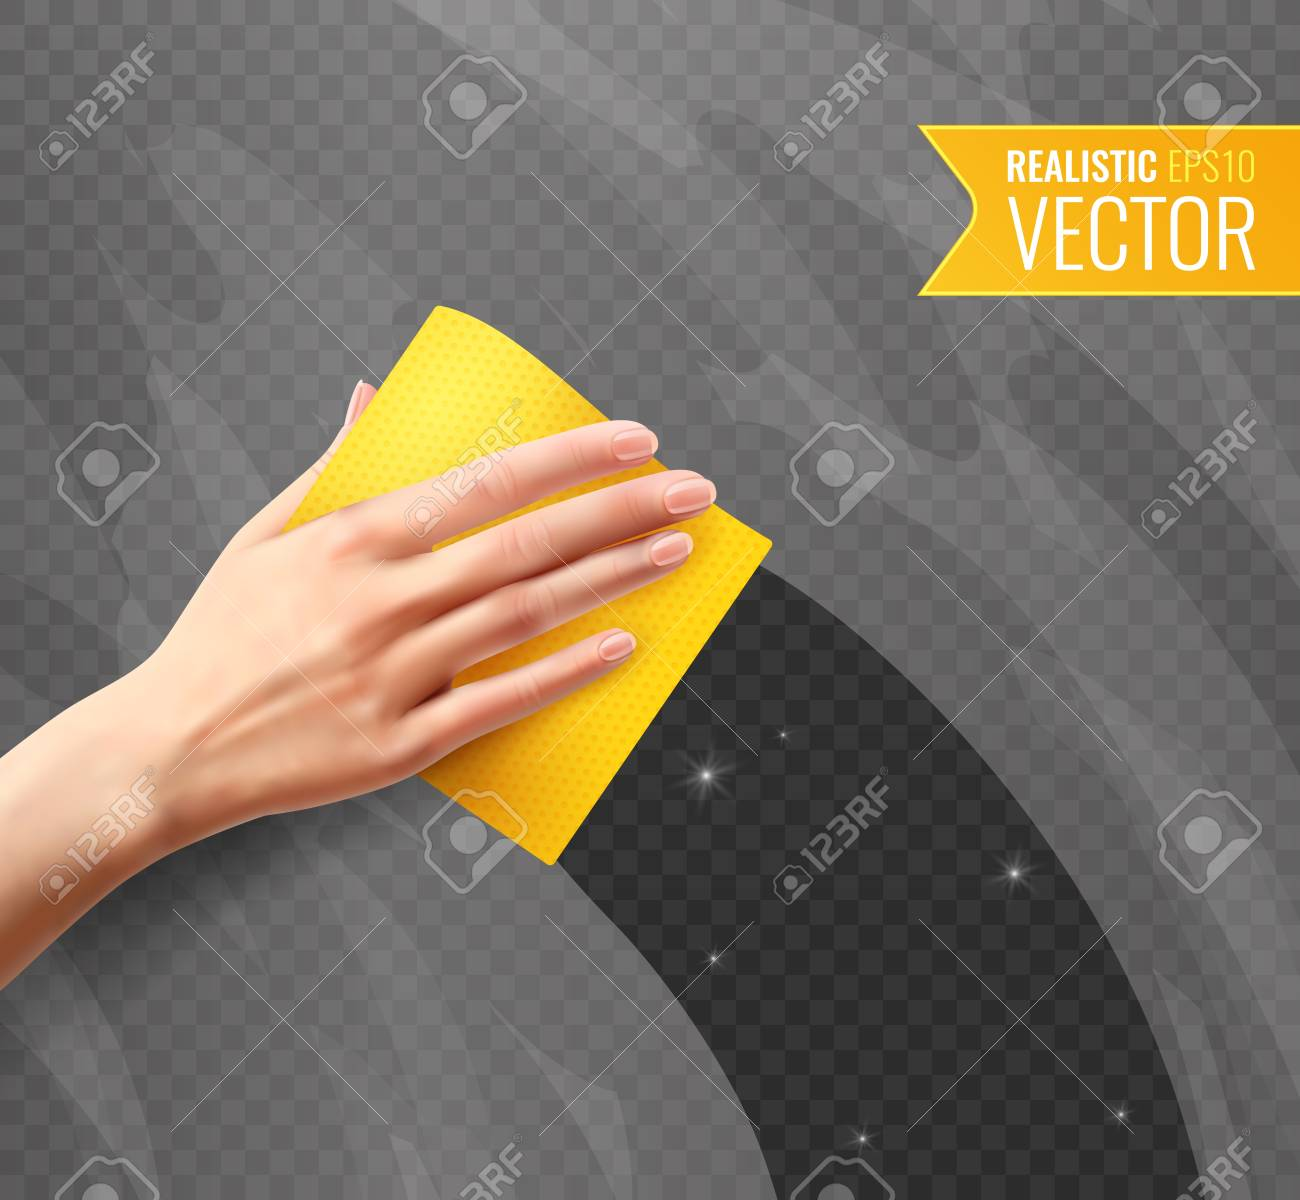 Woman hand wiping dirty glass with yellow napkin transparent background in realistic style vector illustration - 117444961